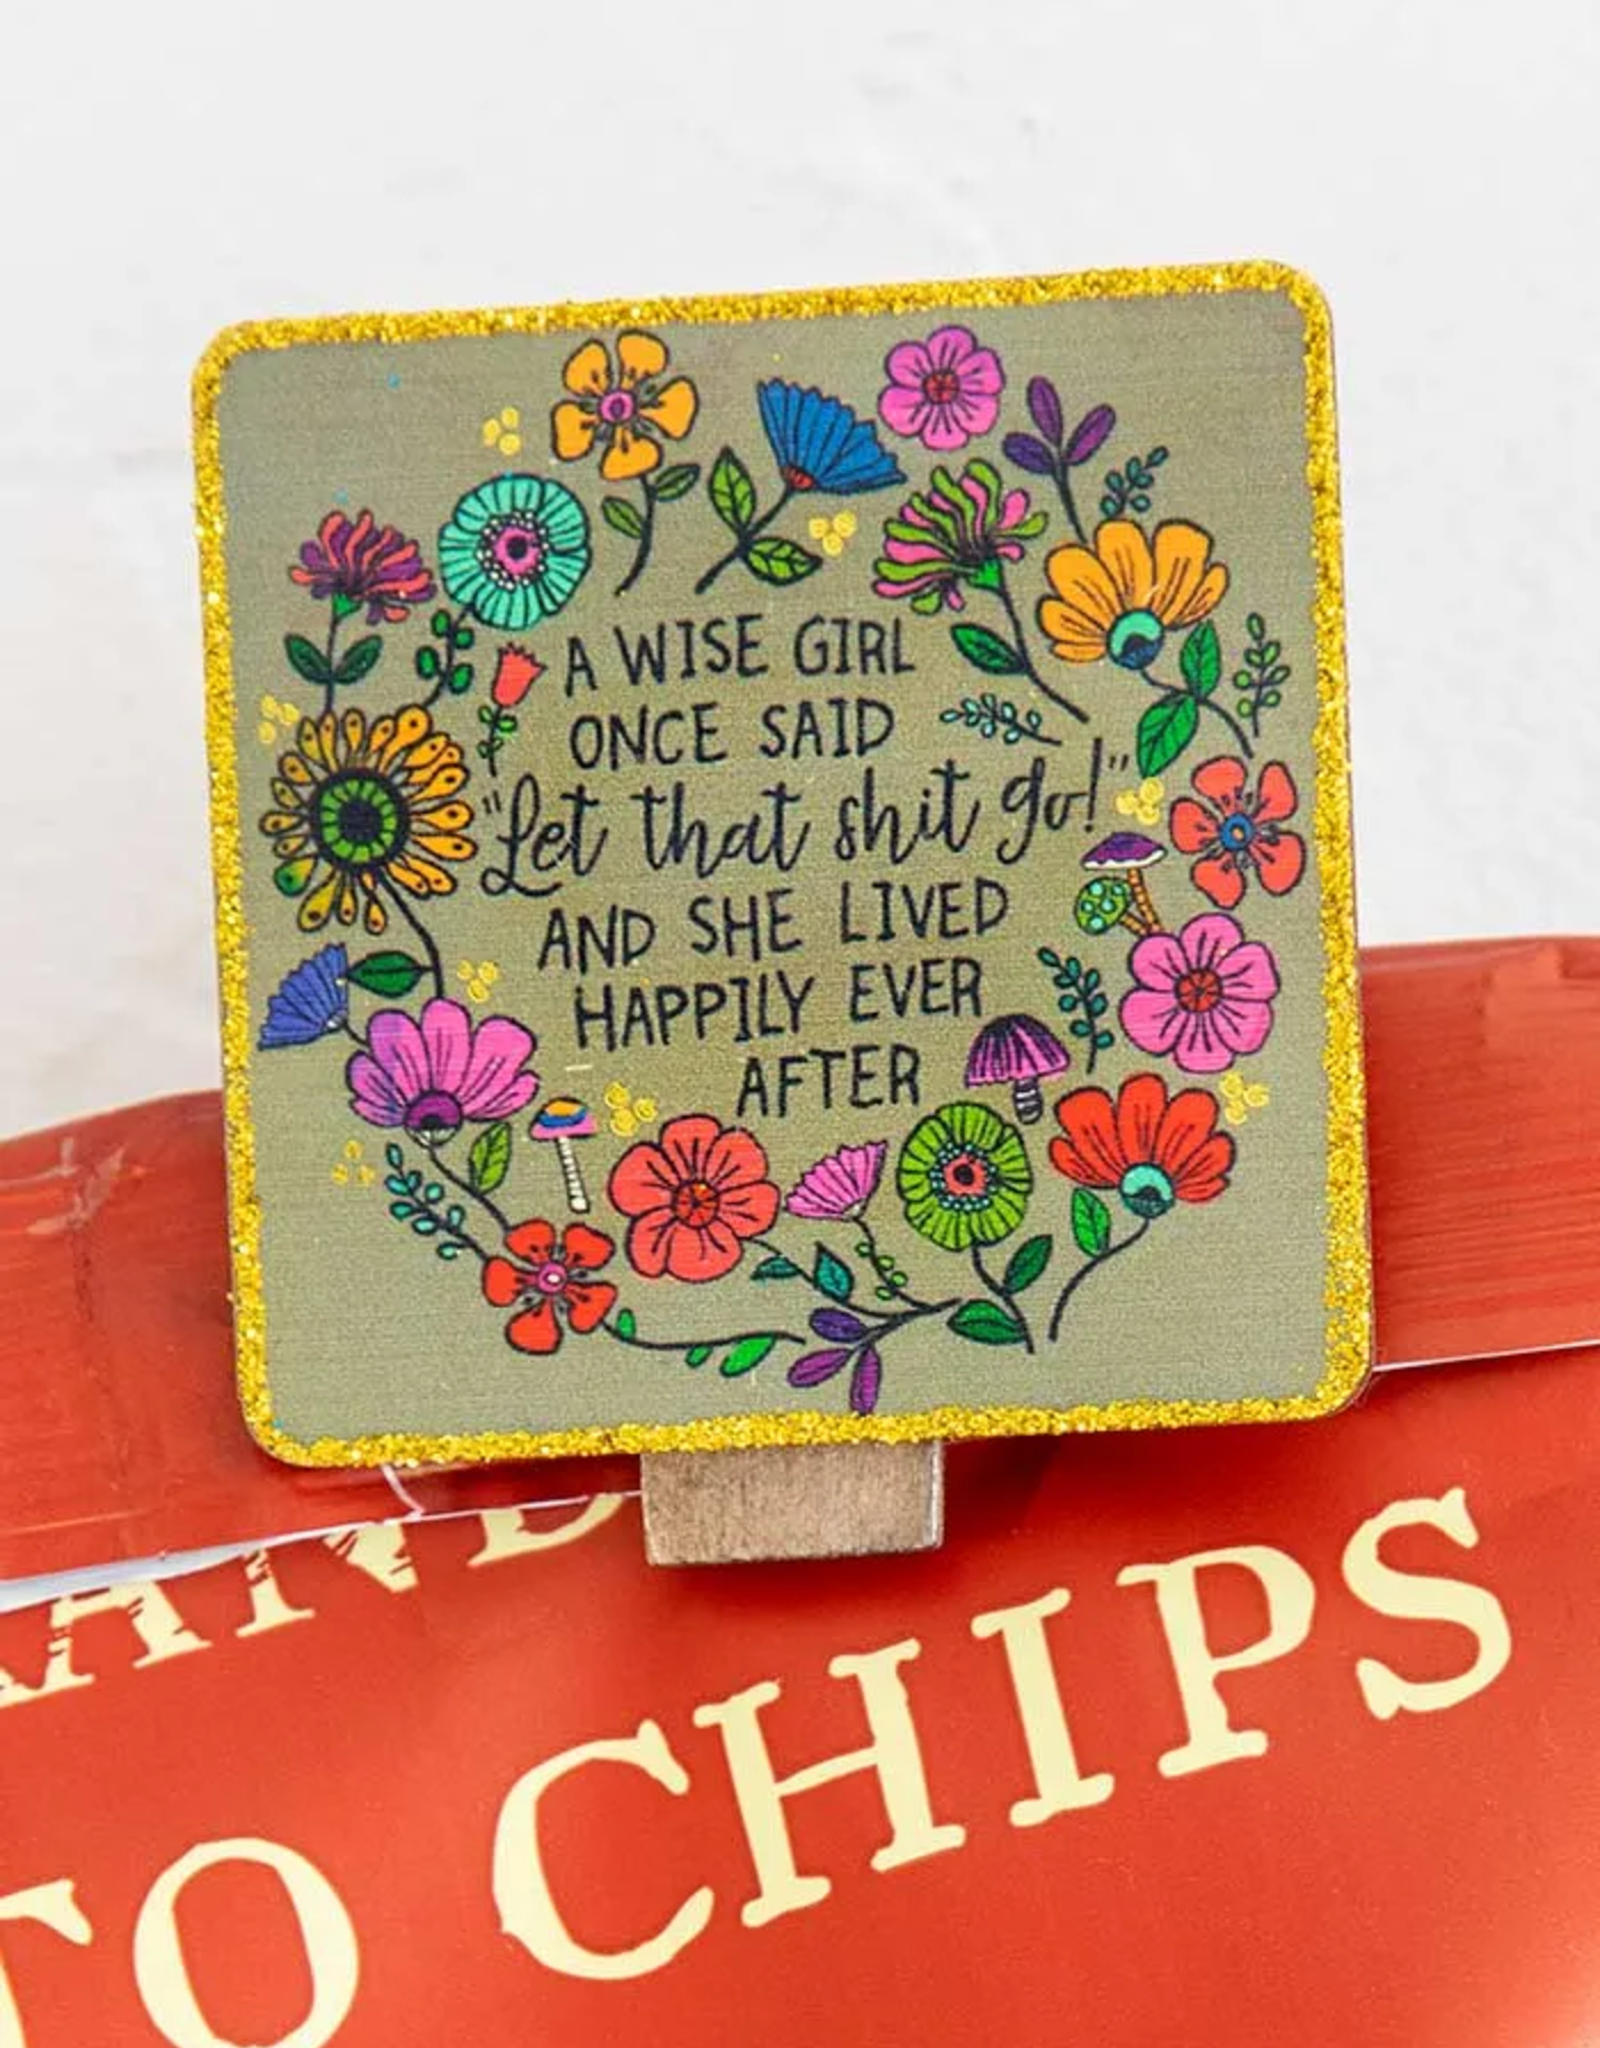 Wise Girl Chirp Magnet Clip